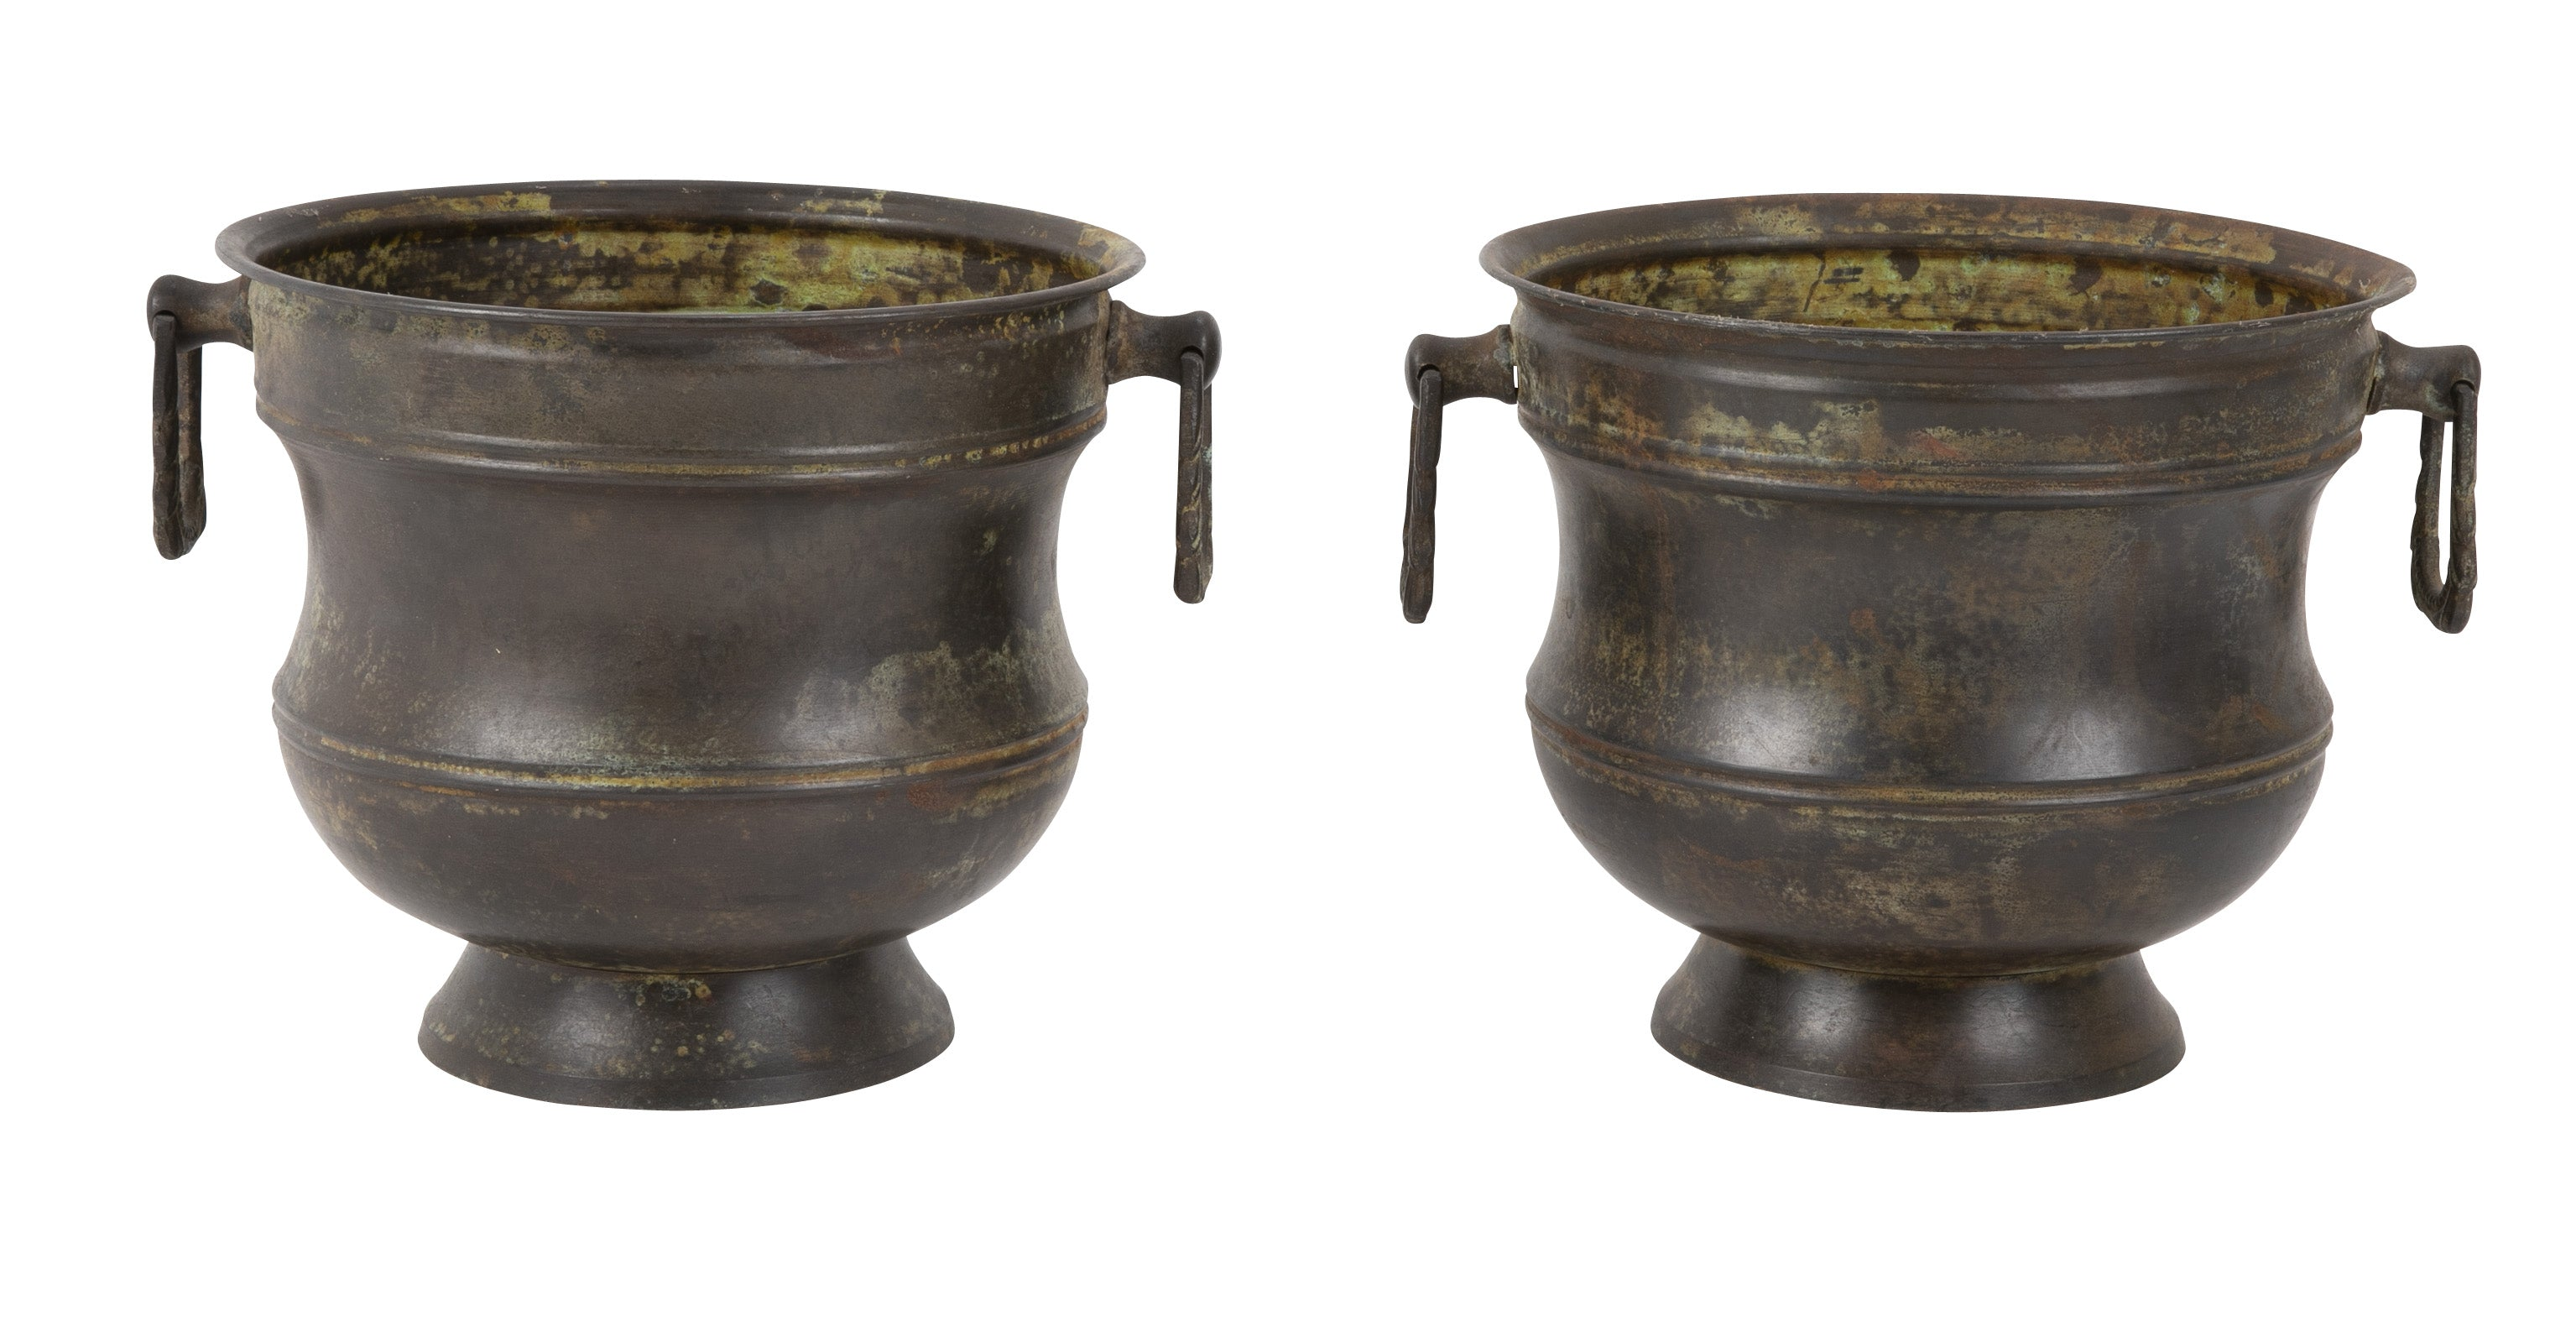 Pair of French Neoclassical Style Brass Urns